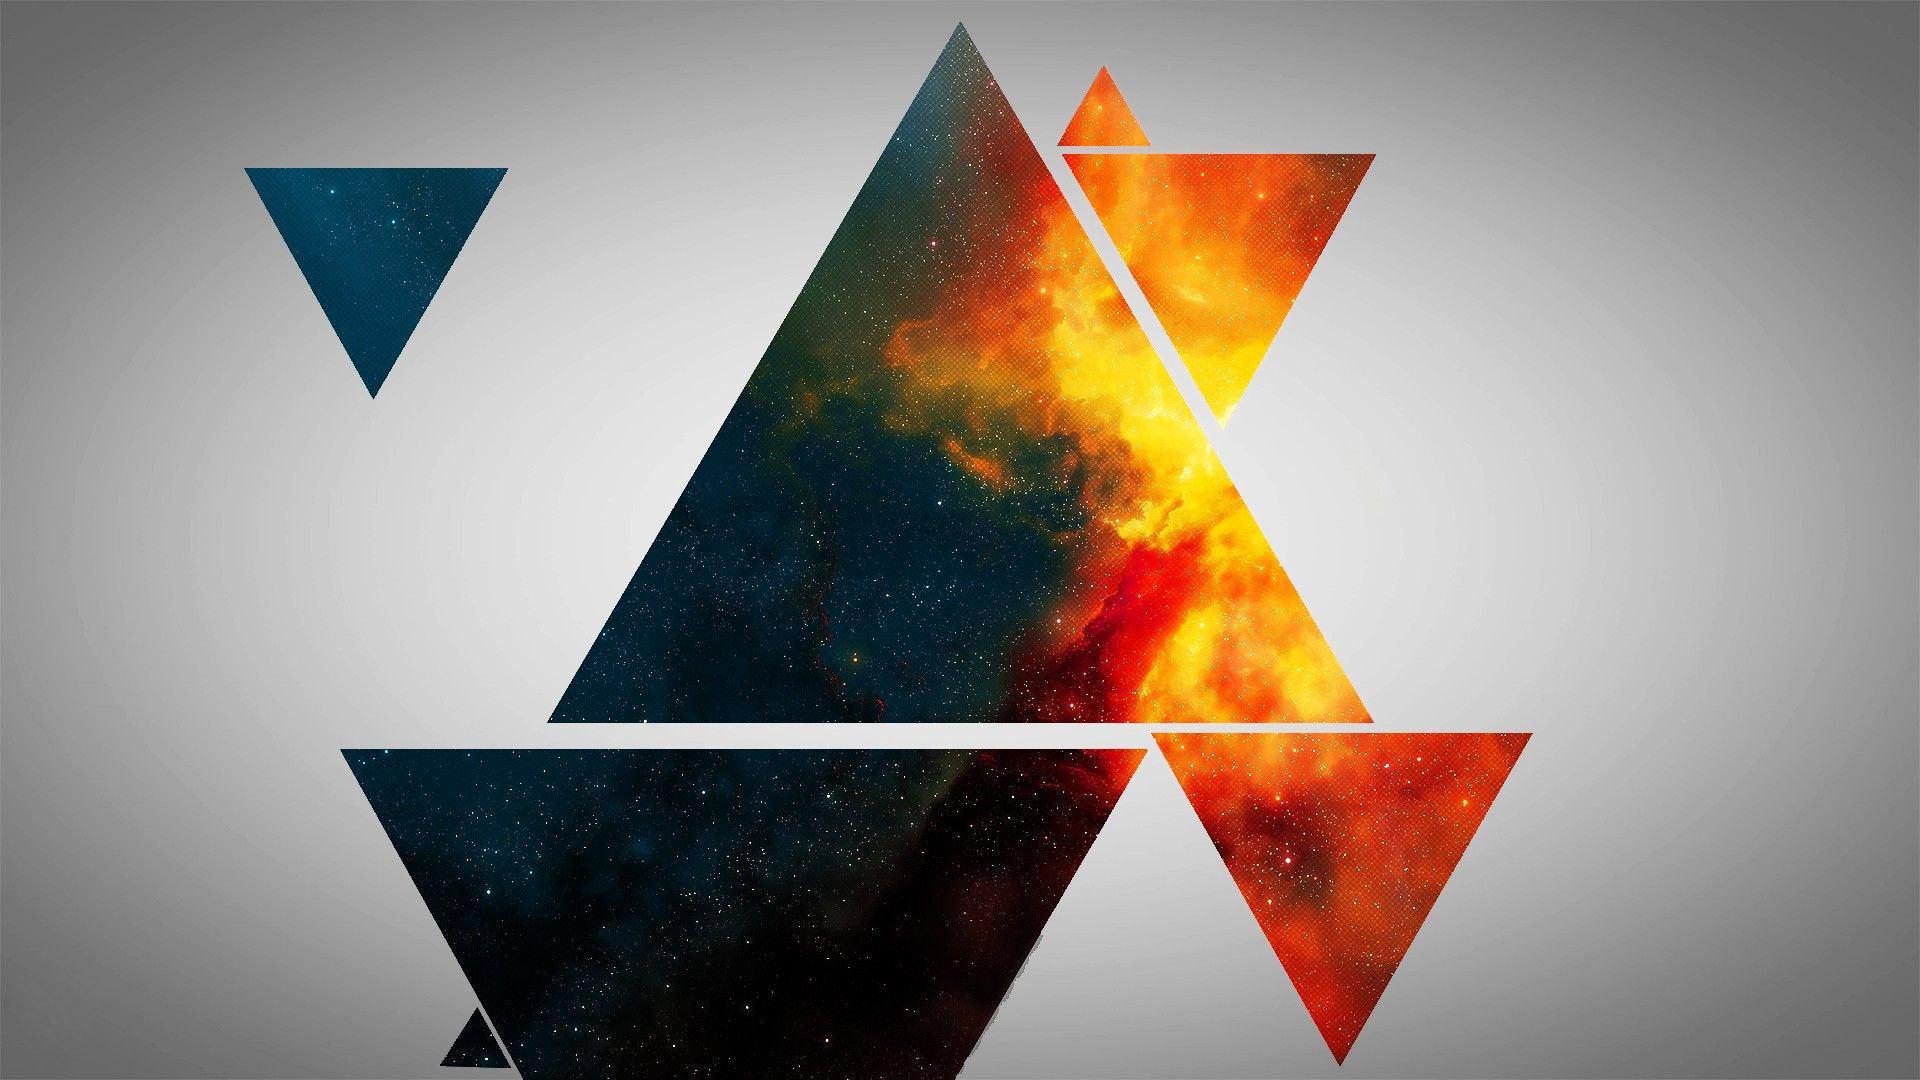 4k triangle wallpapers high quality download free for Sfondi 2048x1152